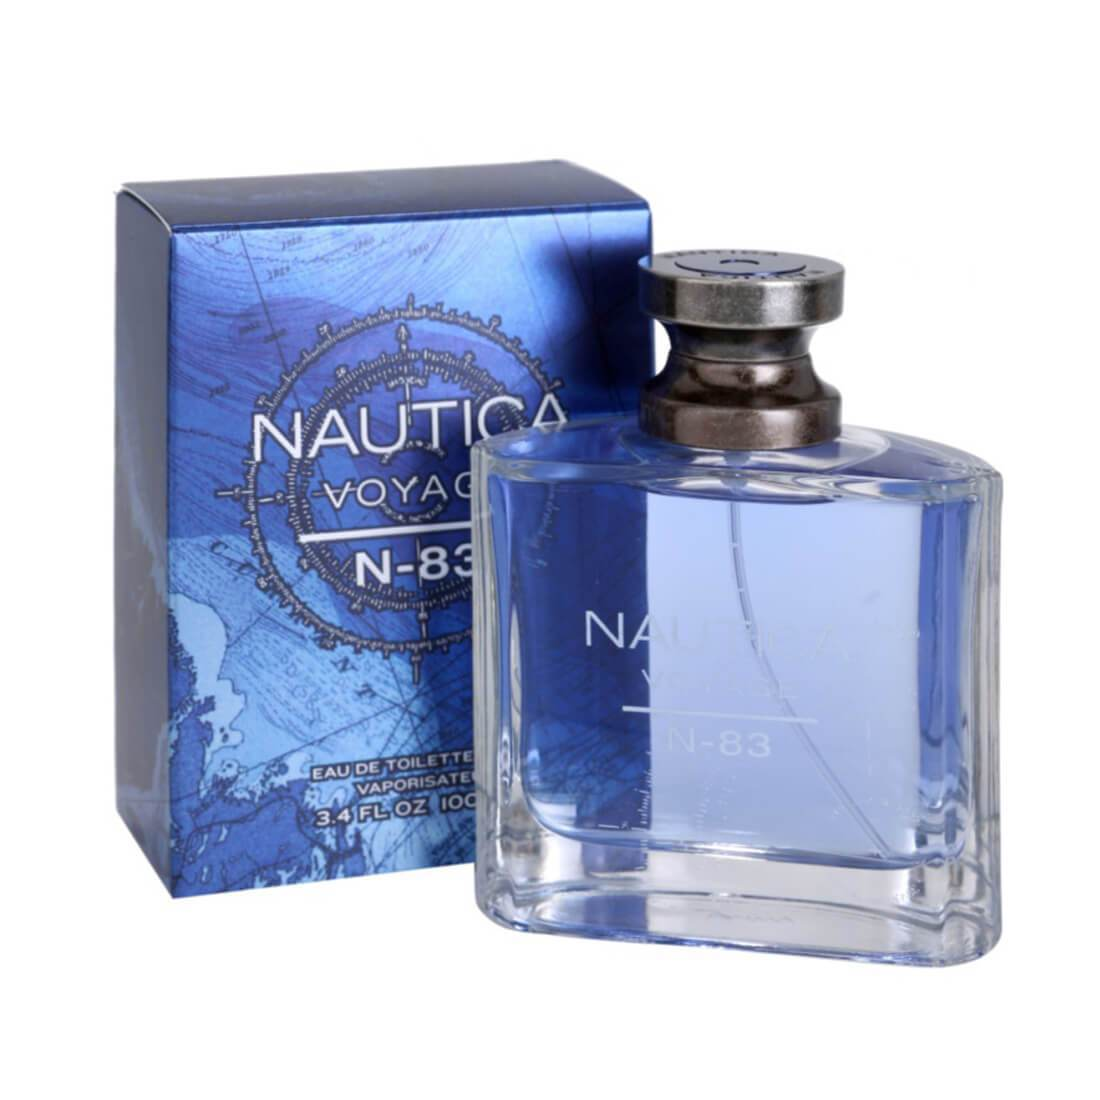 Nautica Voyage N-83 Eau De Toilette For Men - 100ml